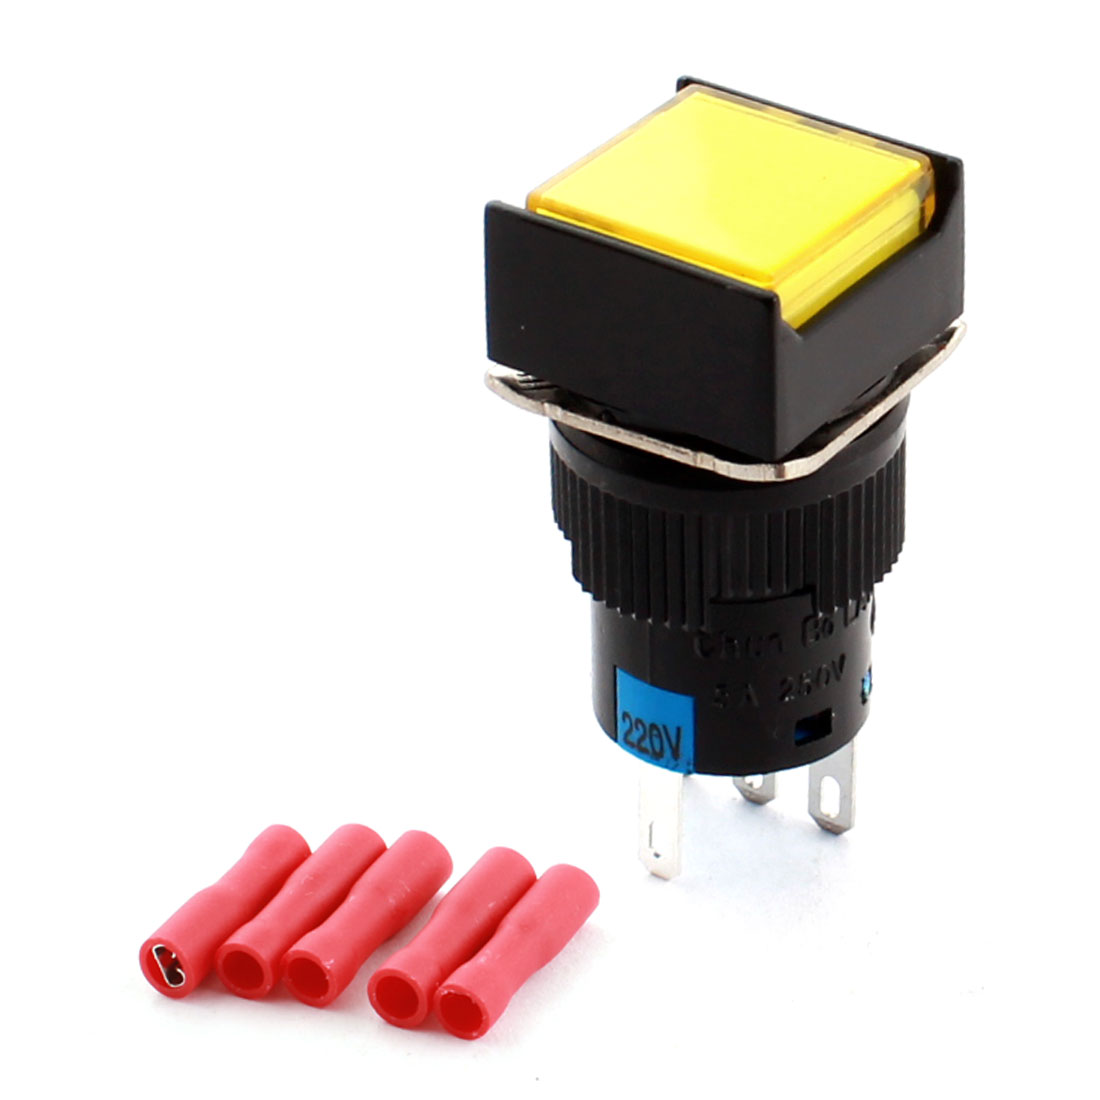 AC 220V Yellow Pilot Light Lamp 5Pin 16mm Panel Mount SPDT Self Locking Square Push Button Switch + 5pcs Female Connectors